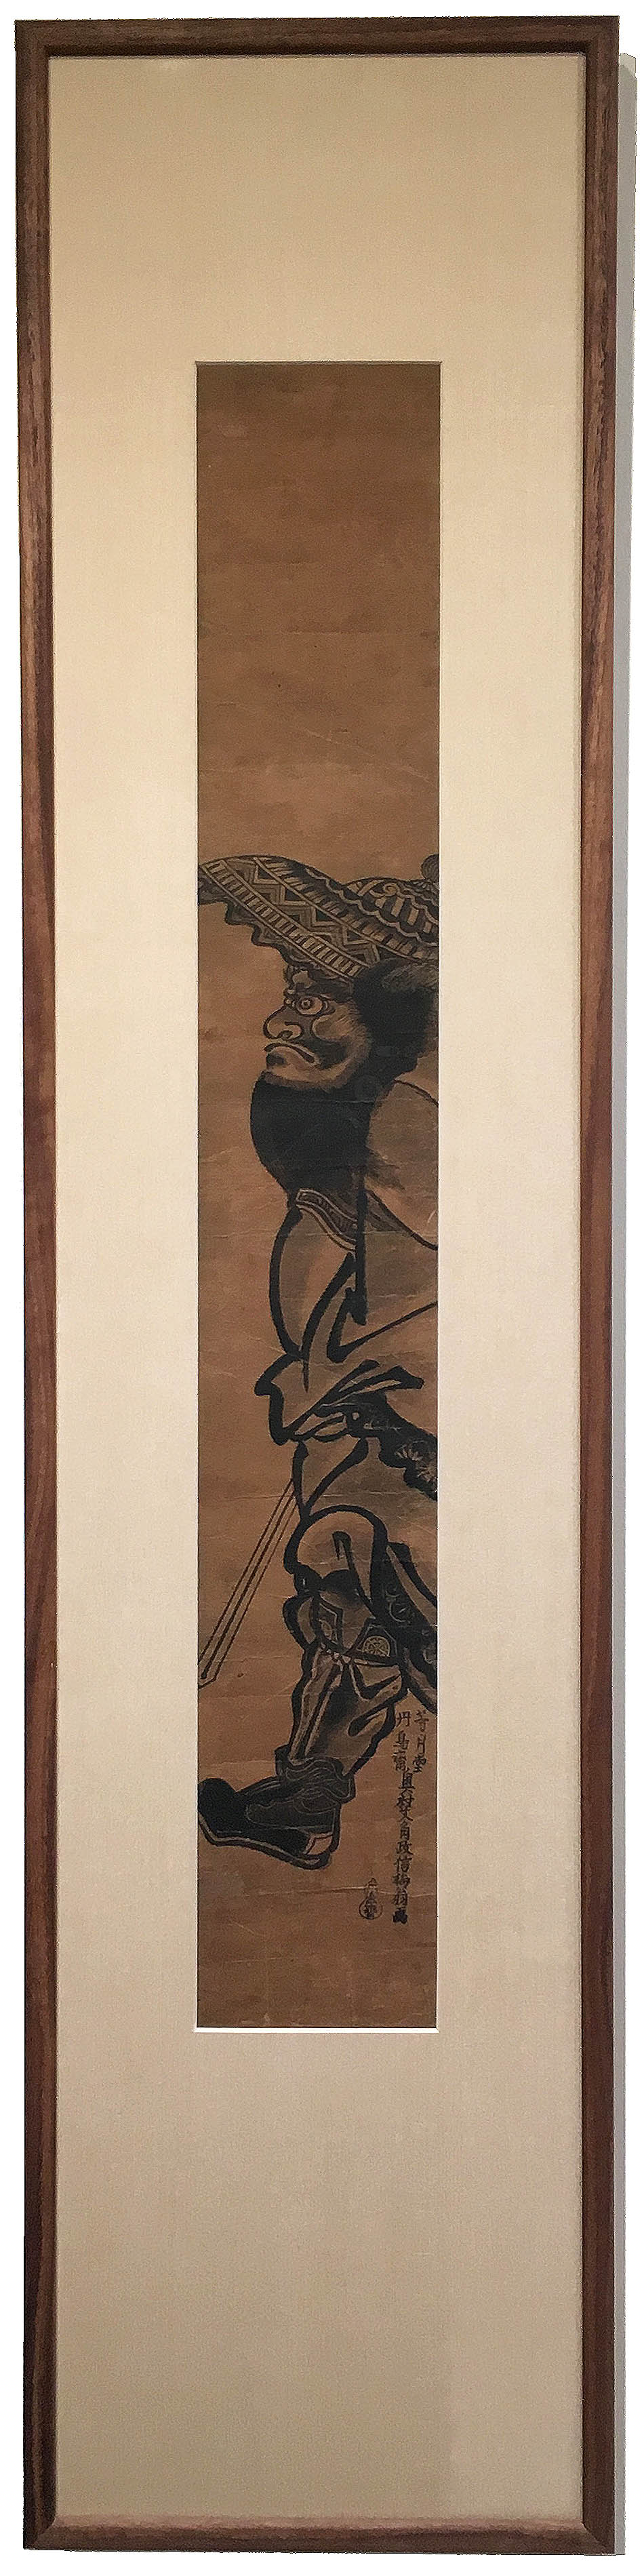 "CLASSIC WOOD IN OIL AND WAX, 8"" X 40"" FRAME ( OKUMURA MASANOBU )"